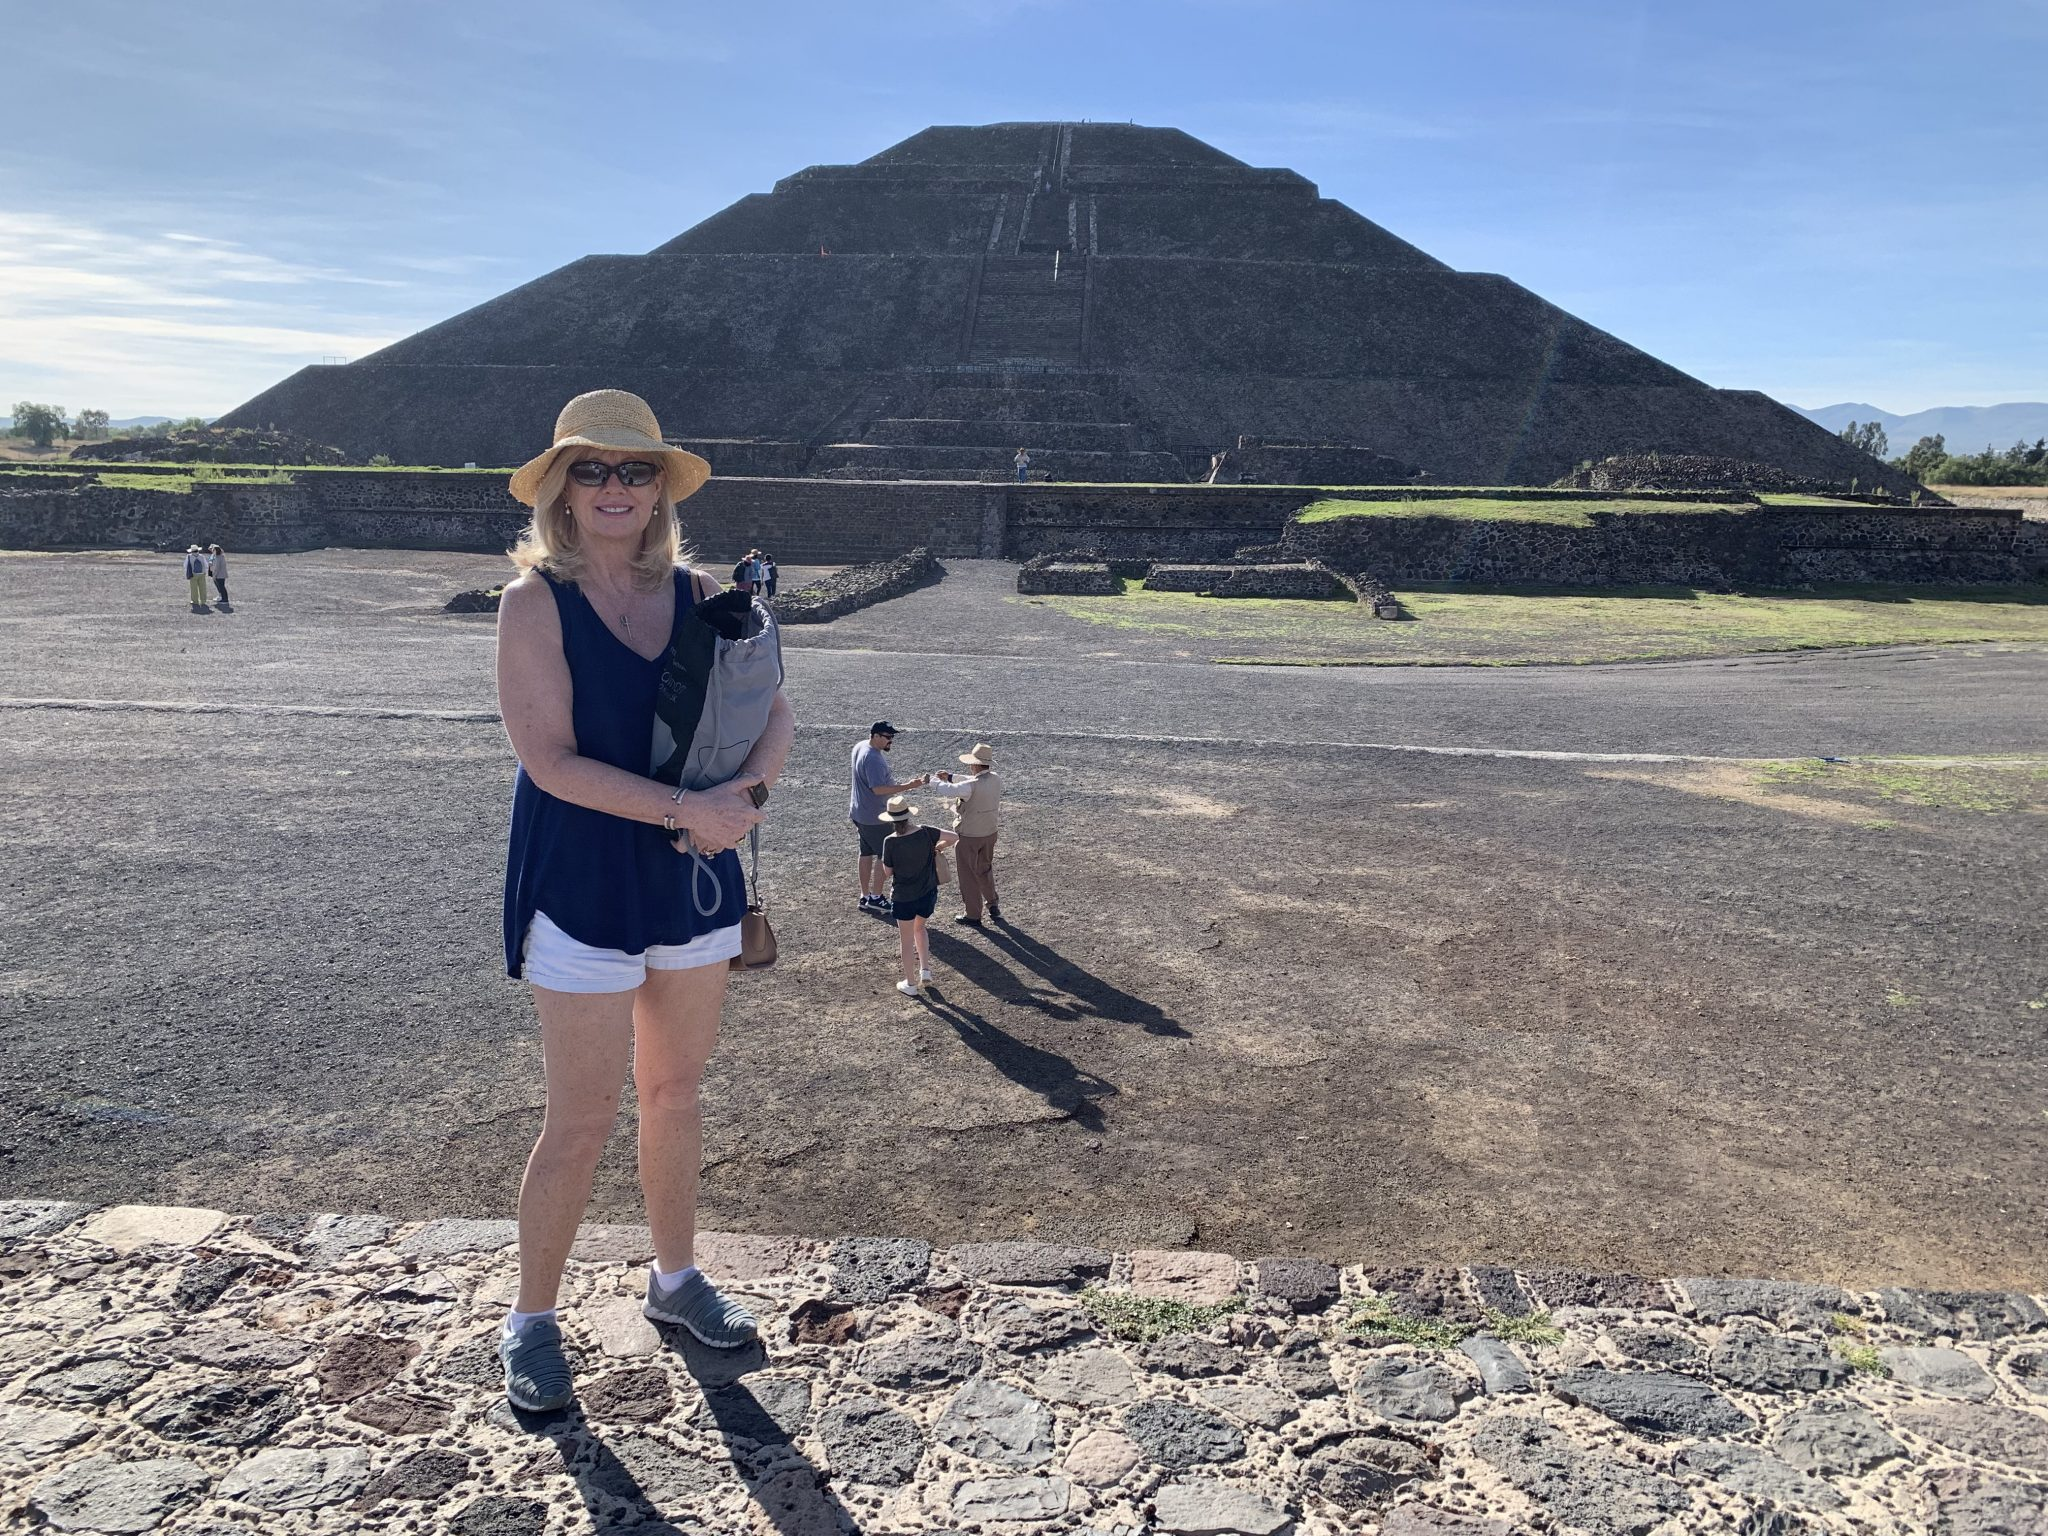 In Front Of The Pyramid Of The Sun Teotihuacan